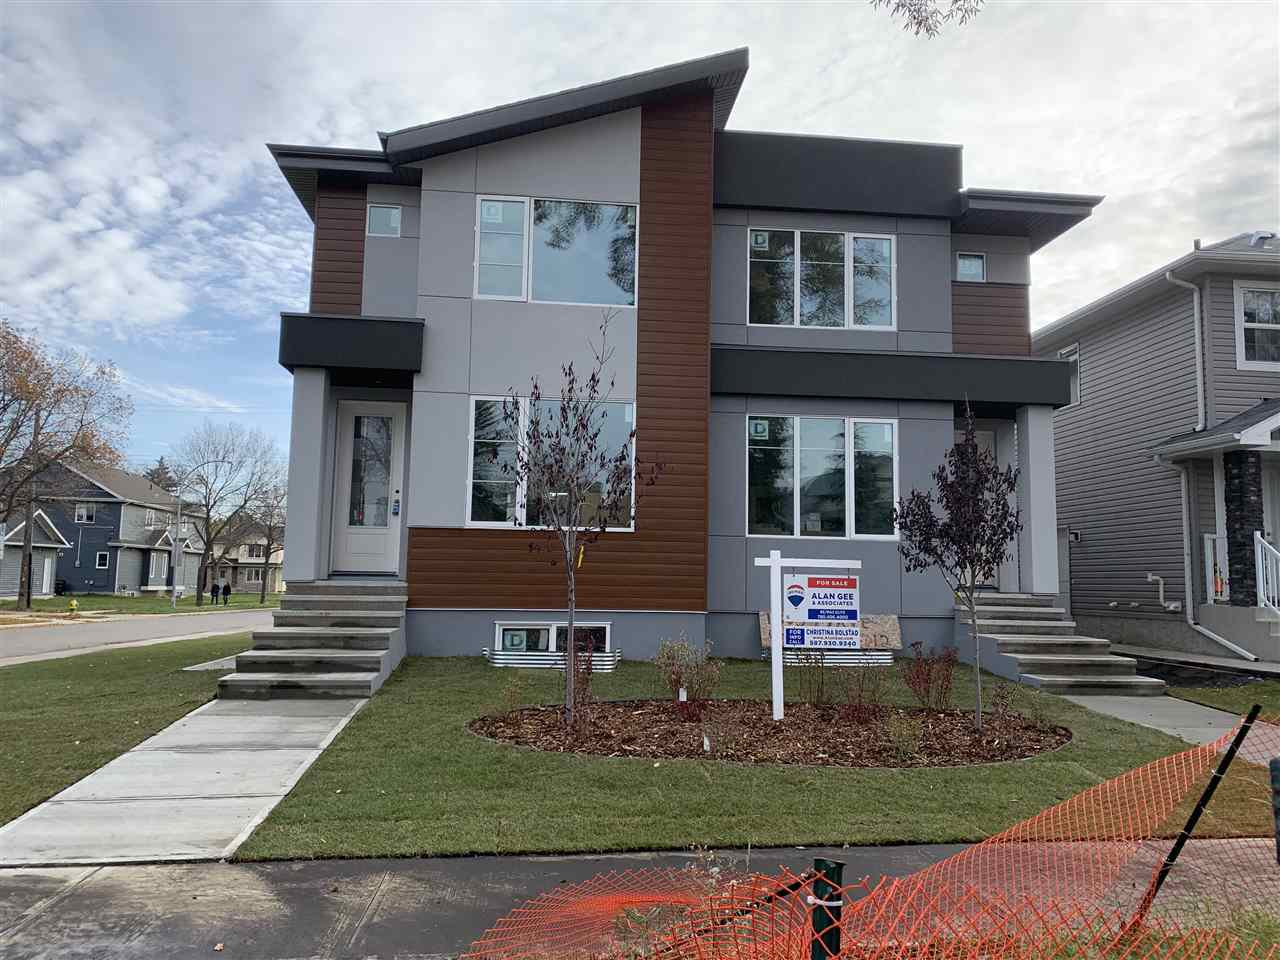 Main Photo: 11305 79 Avenue in Edmonton: Zone 15 House Half Duplex for sale : MLS®# E4194397